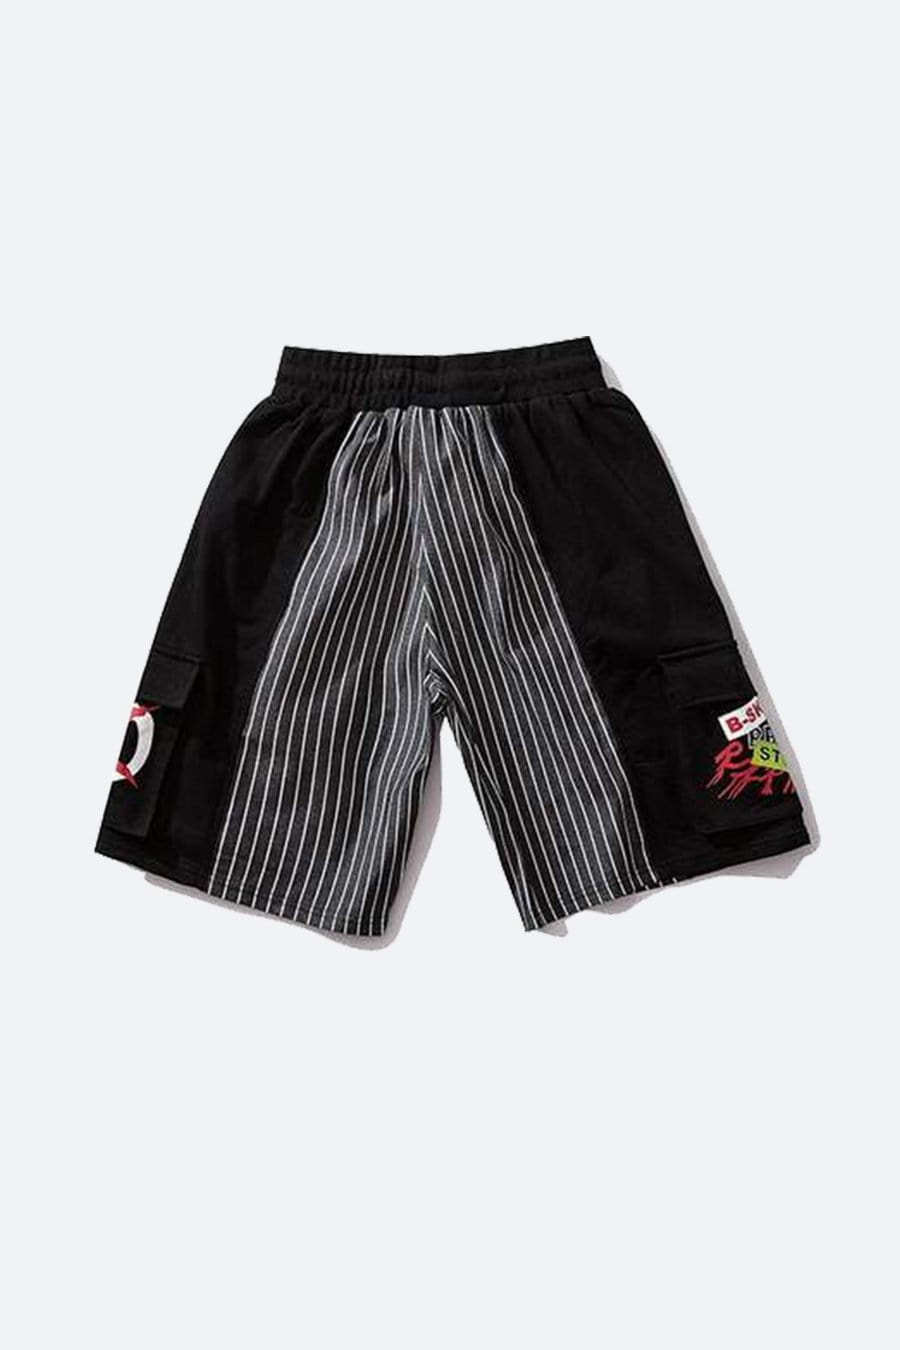 Forensic Shorts